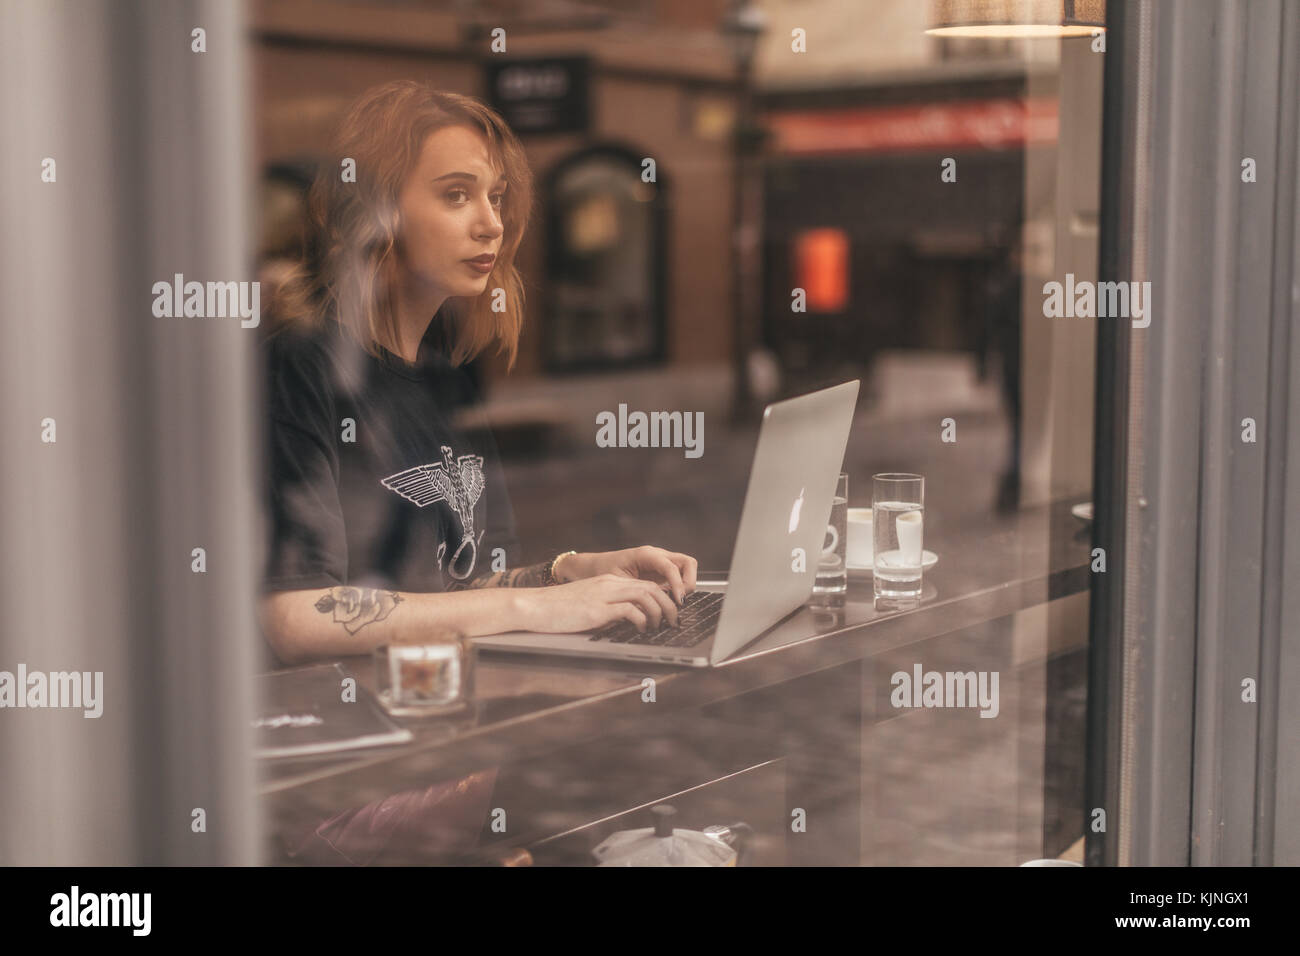 Pretty girl drinking coffee and working on her lap top in a bar - Stock Image